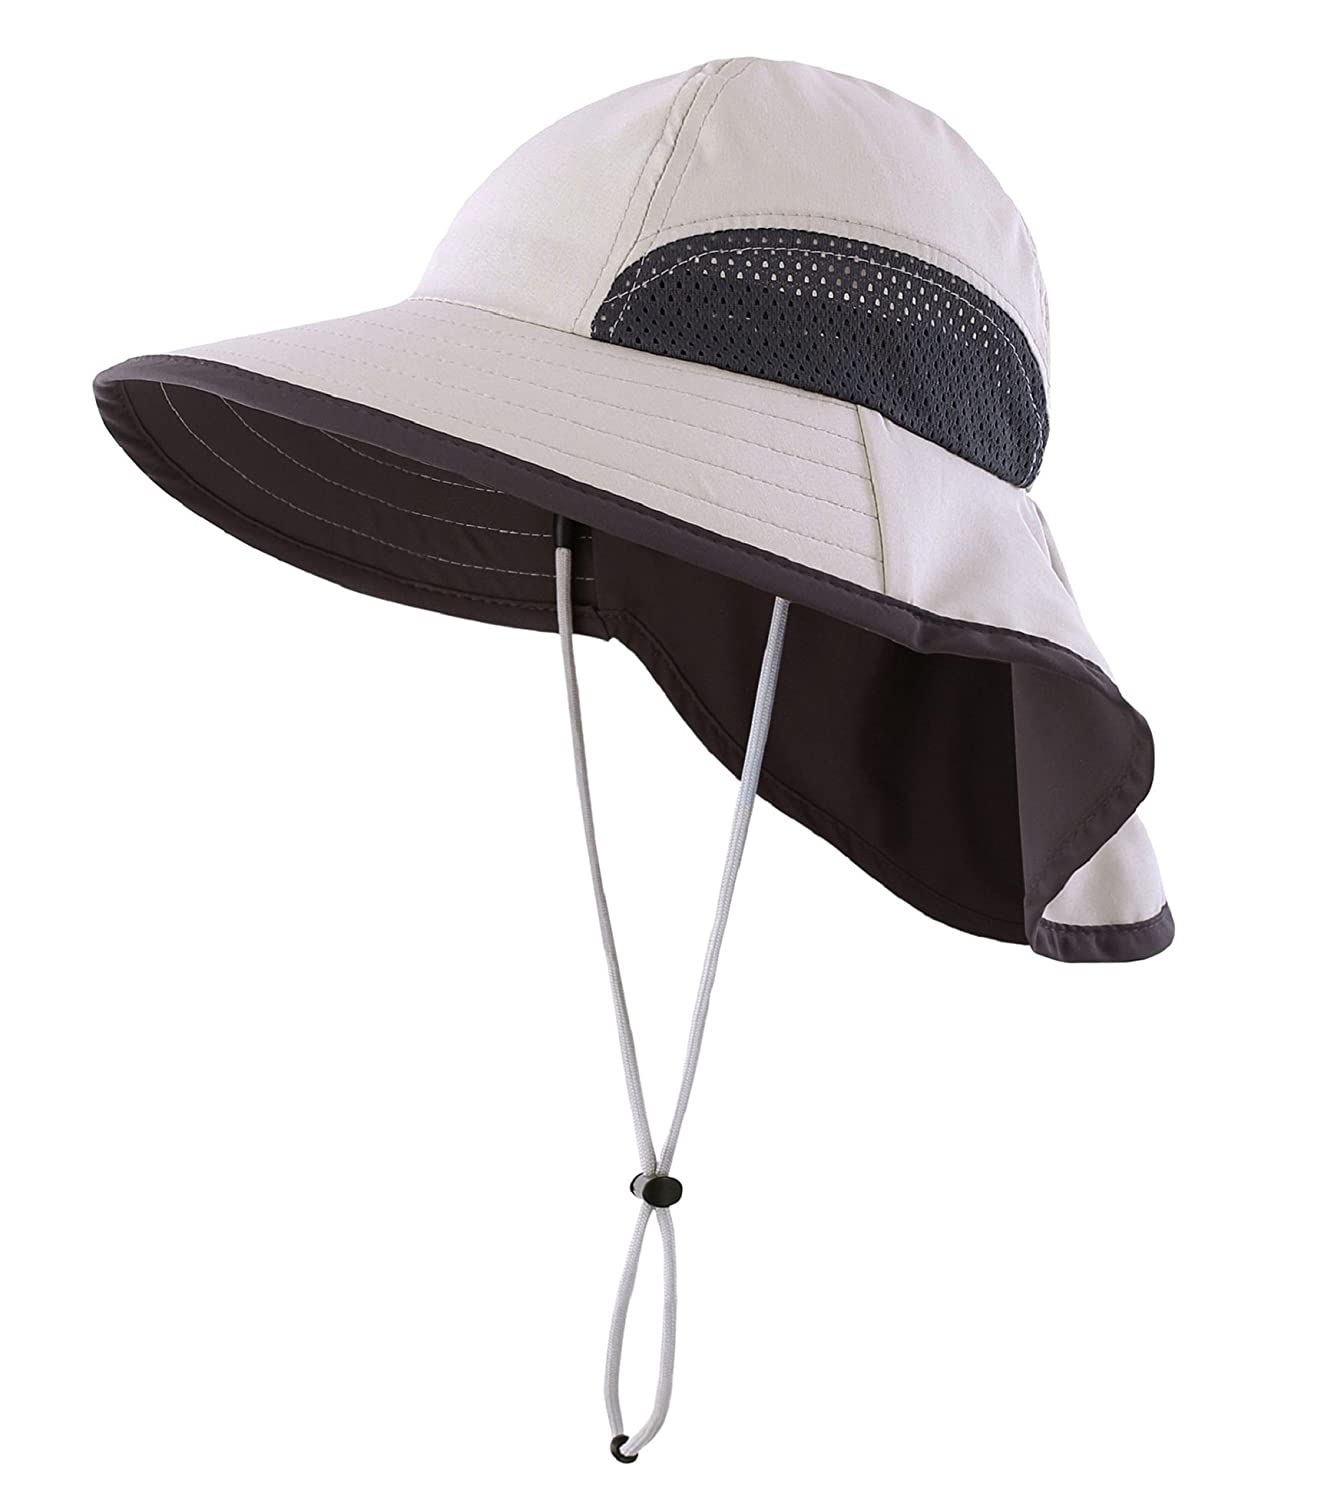 Amazon.com  Connectyle Kids Summer Wide Brim UPF 50+ Mesh Sun Hats with Neck  Flap UV Sun Protection Bucket Hat Gray  Clothing a4787b7d6ad